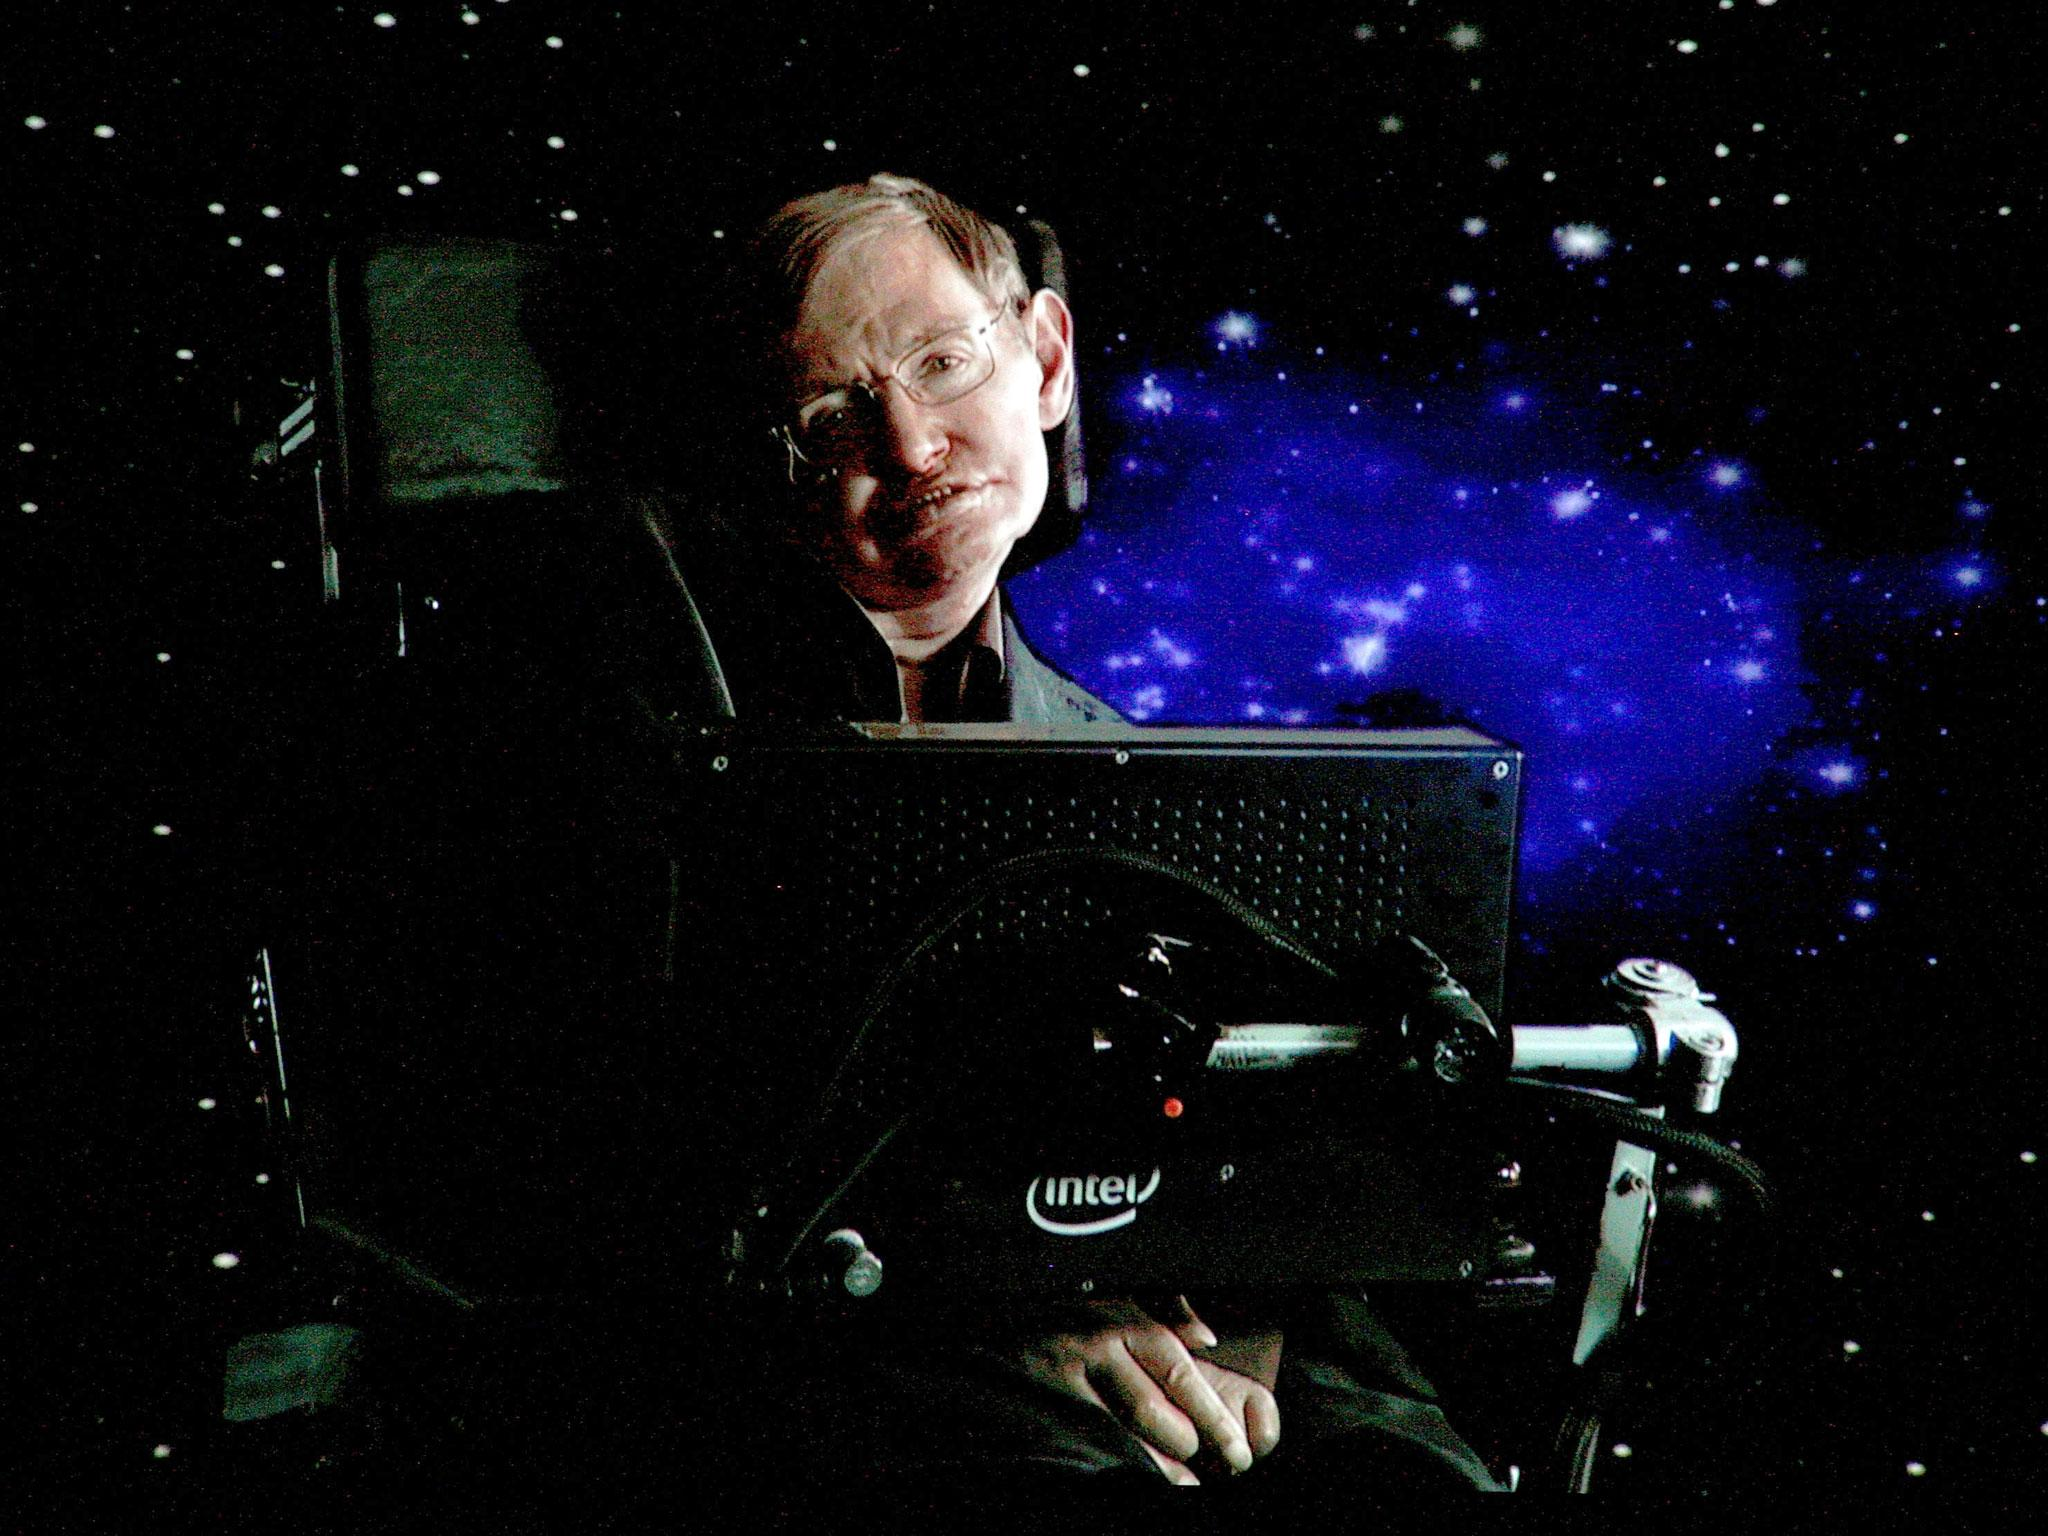 Starshot Project: Stephen Hawking and Mark Zuckerberg launch most ambitious alien-finding project ever